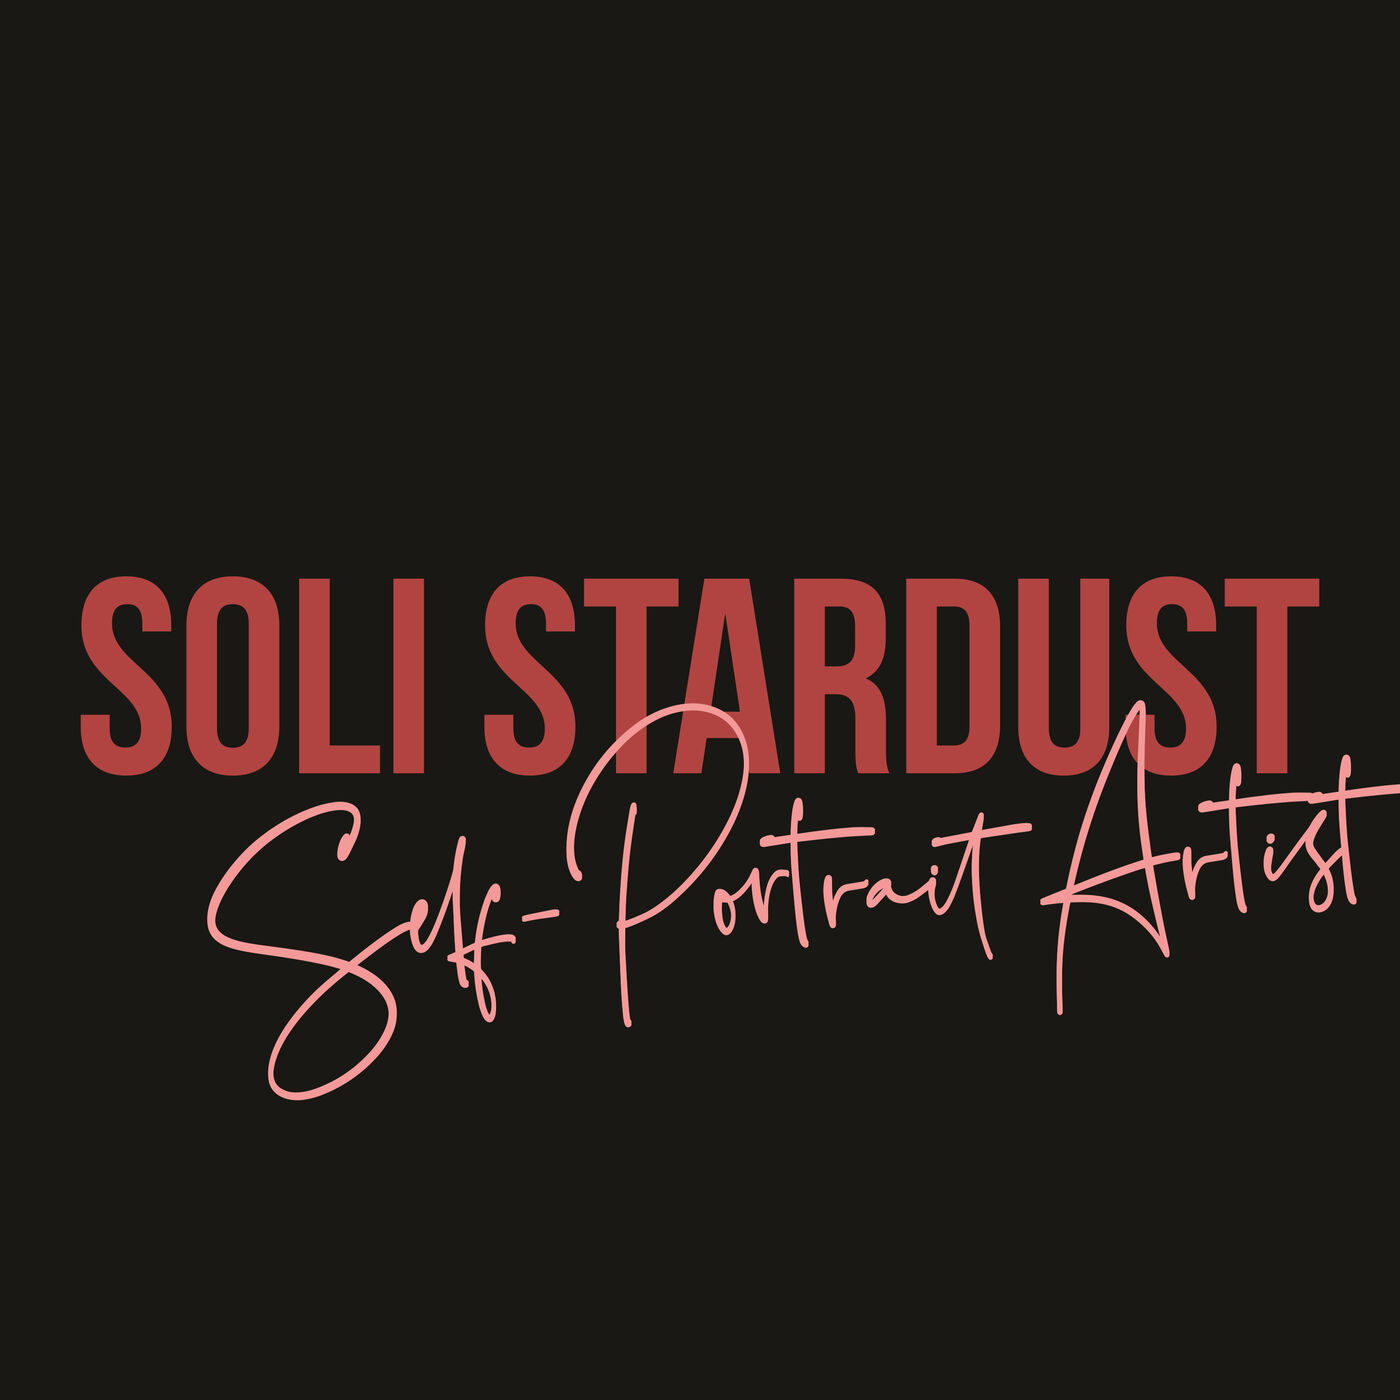 """#61: Self-Portrait Artist: Soli Stardust - """"I wanted to be in magazines..."""""""